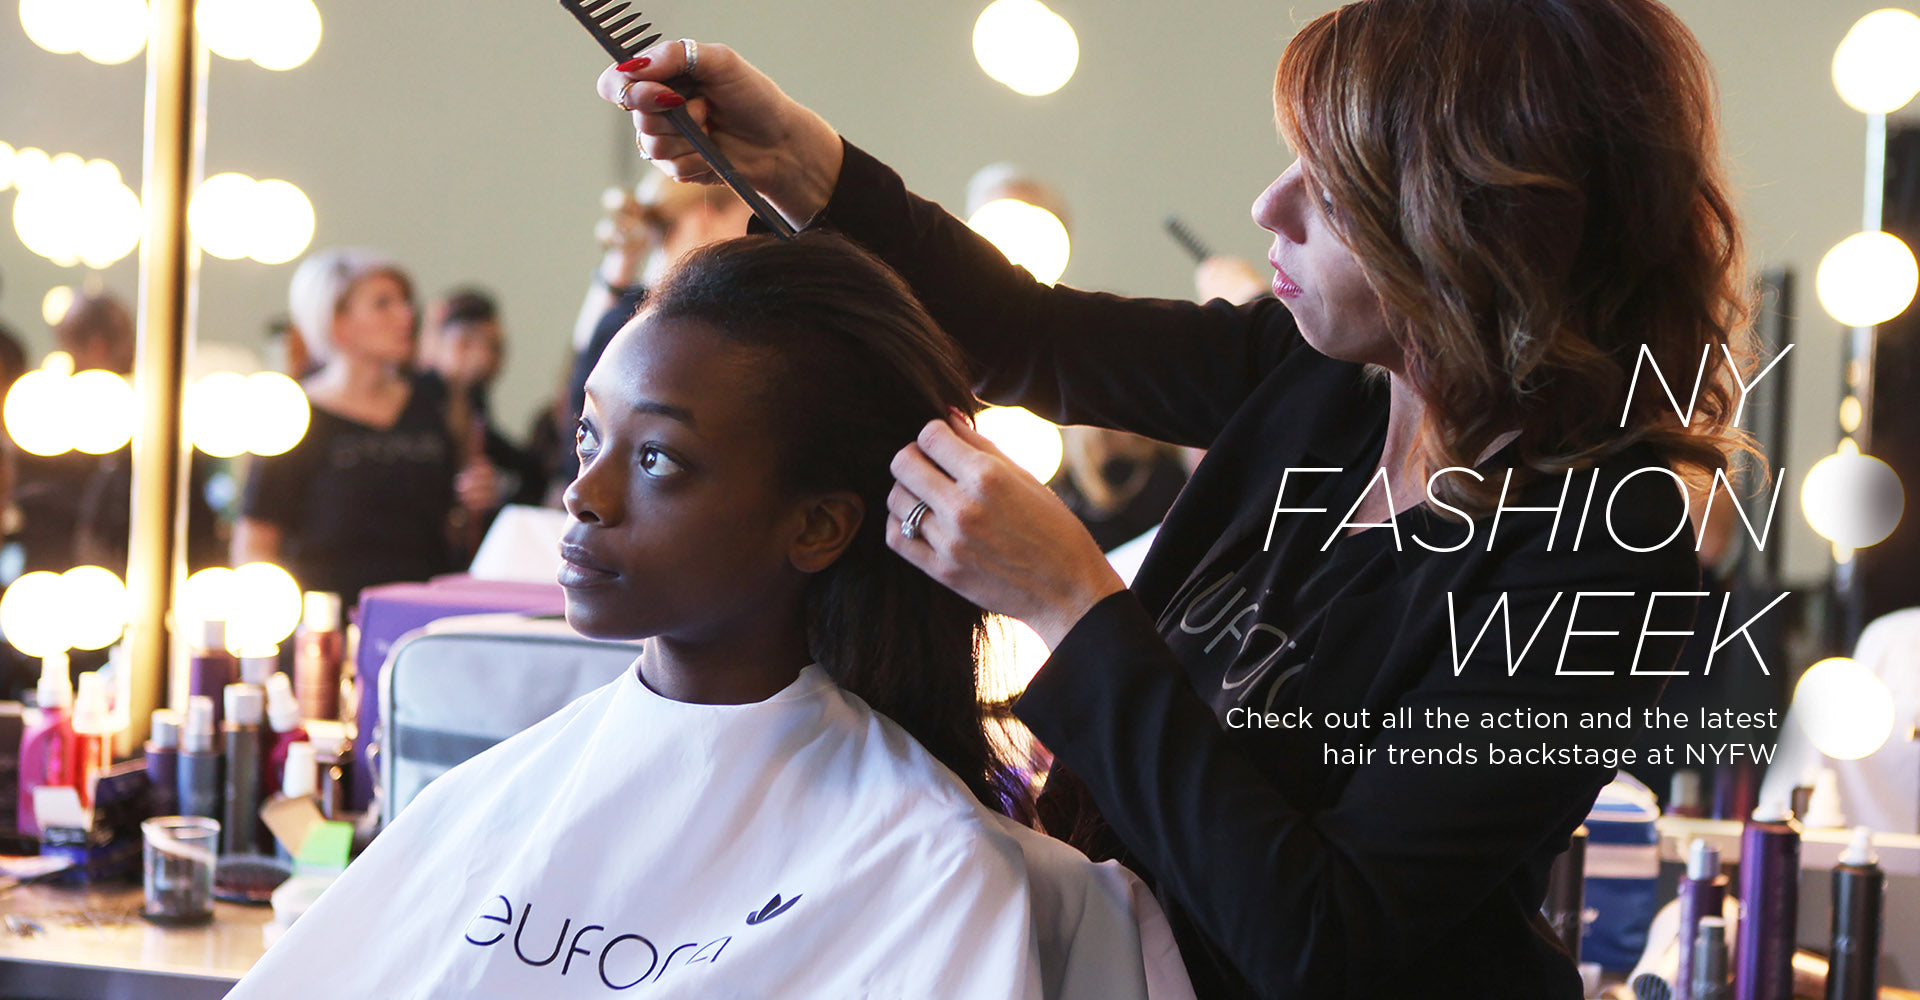 New York Fashion Week: Check out all the action and the latest hair trends backstage at N.Y.F.W.